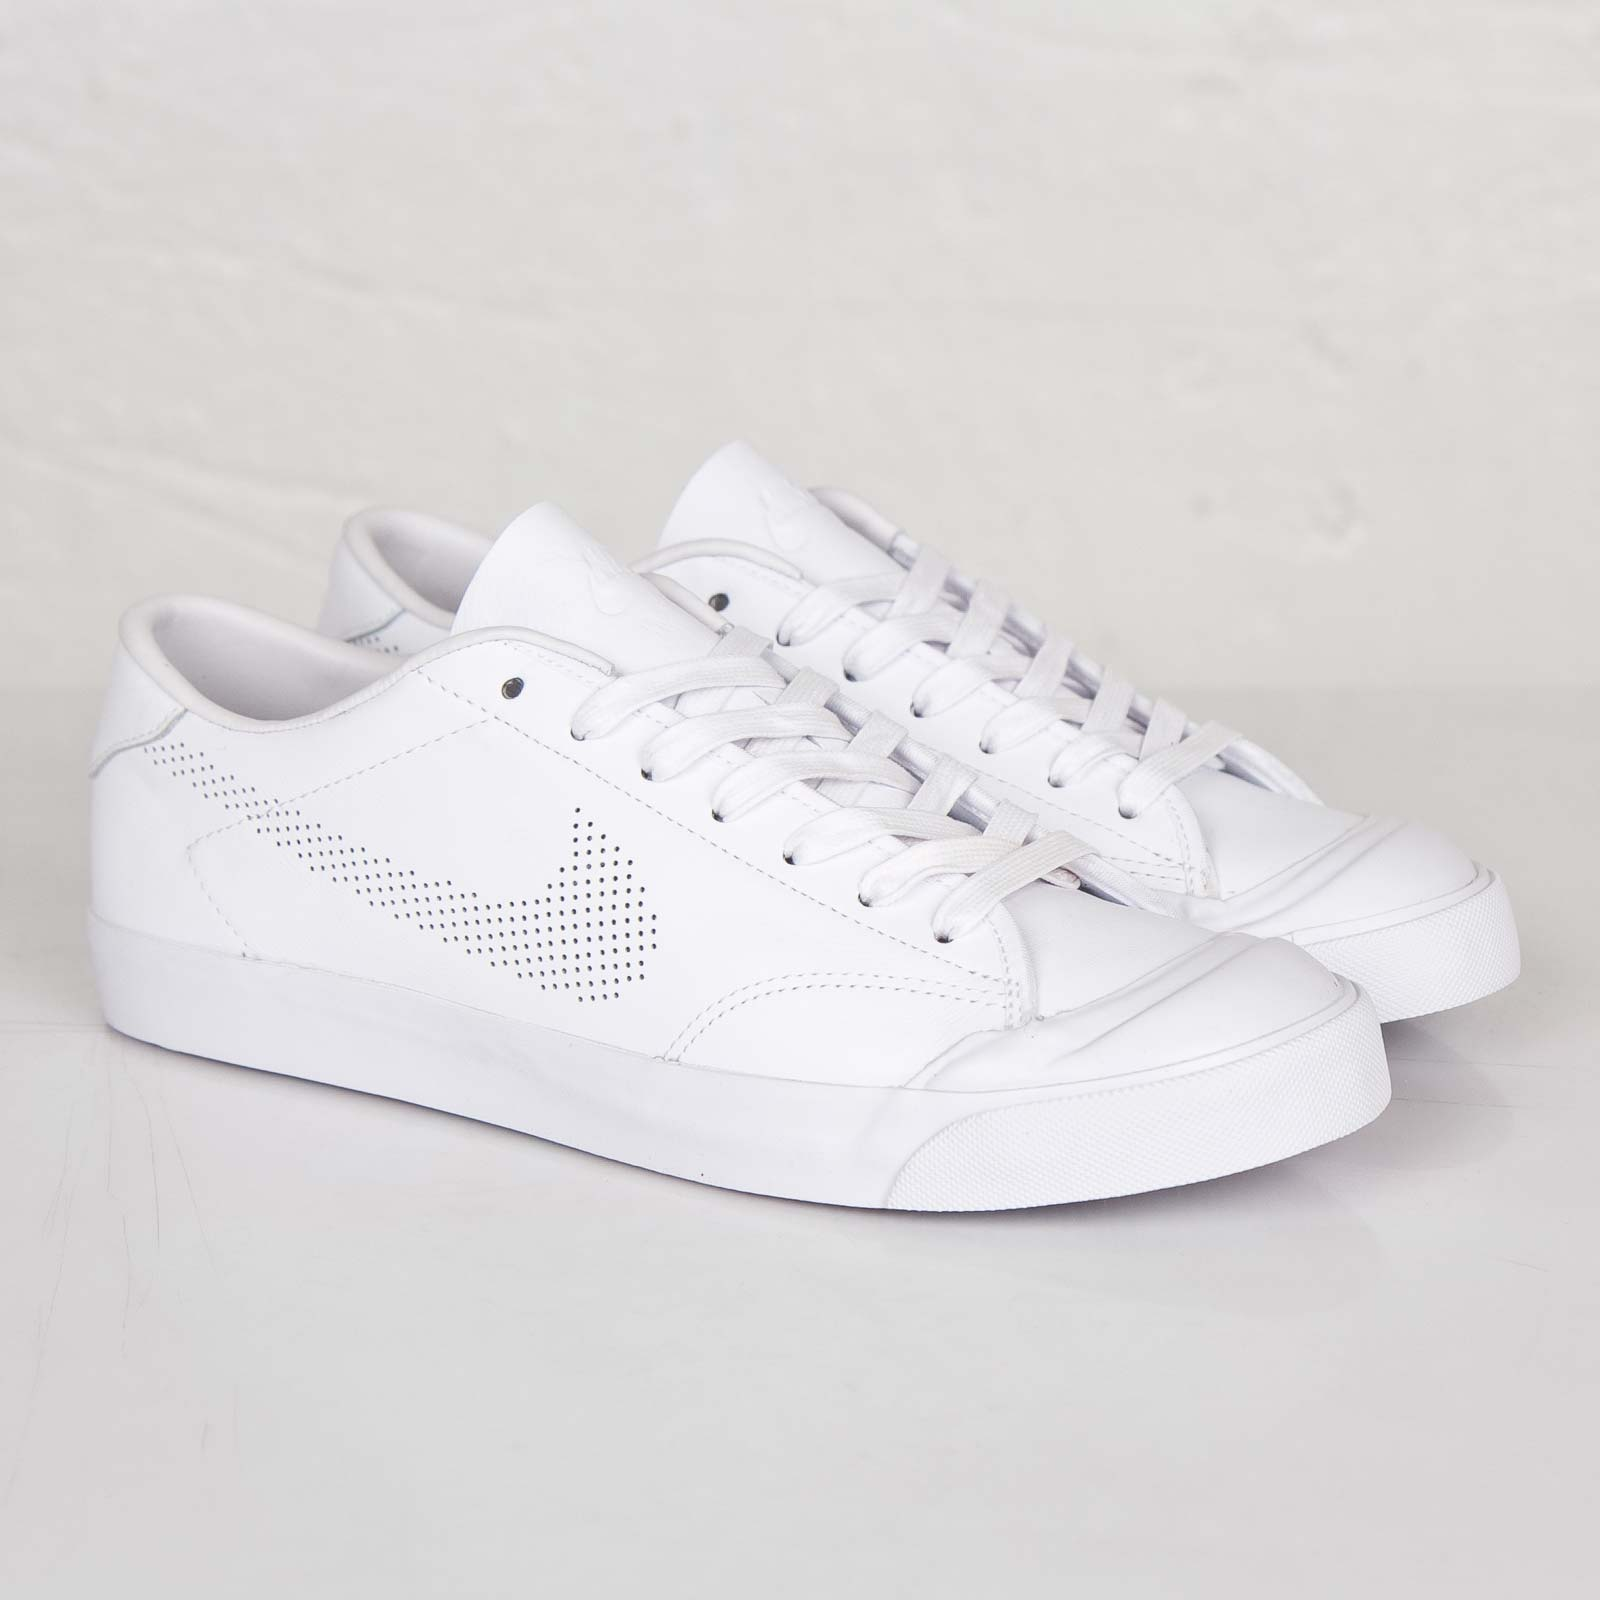 lowest price ca439 1a43e Nike All Court 2 Low - 727801-111 - Sneakersnstuff | sneakers ...